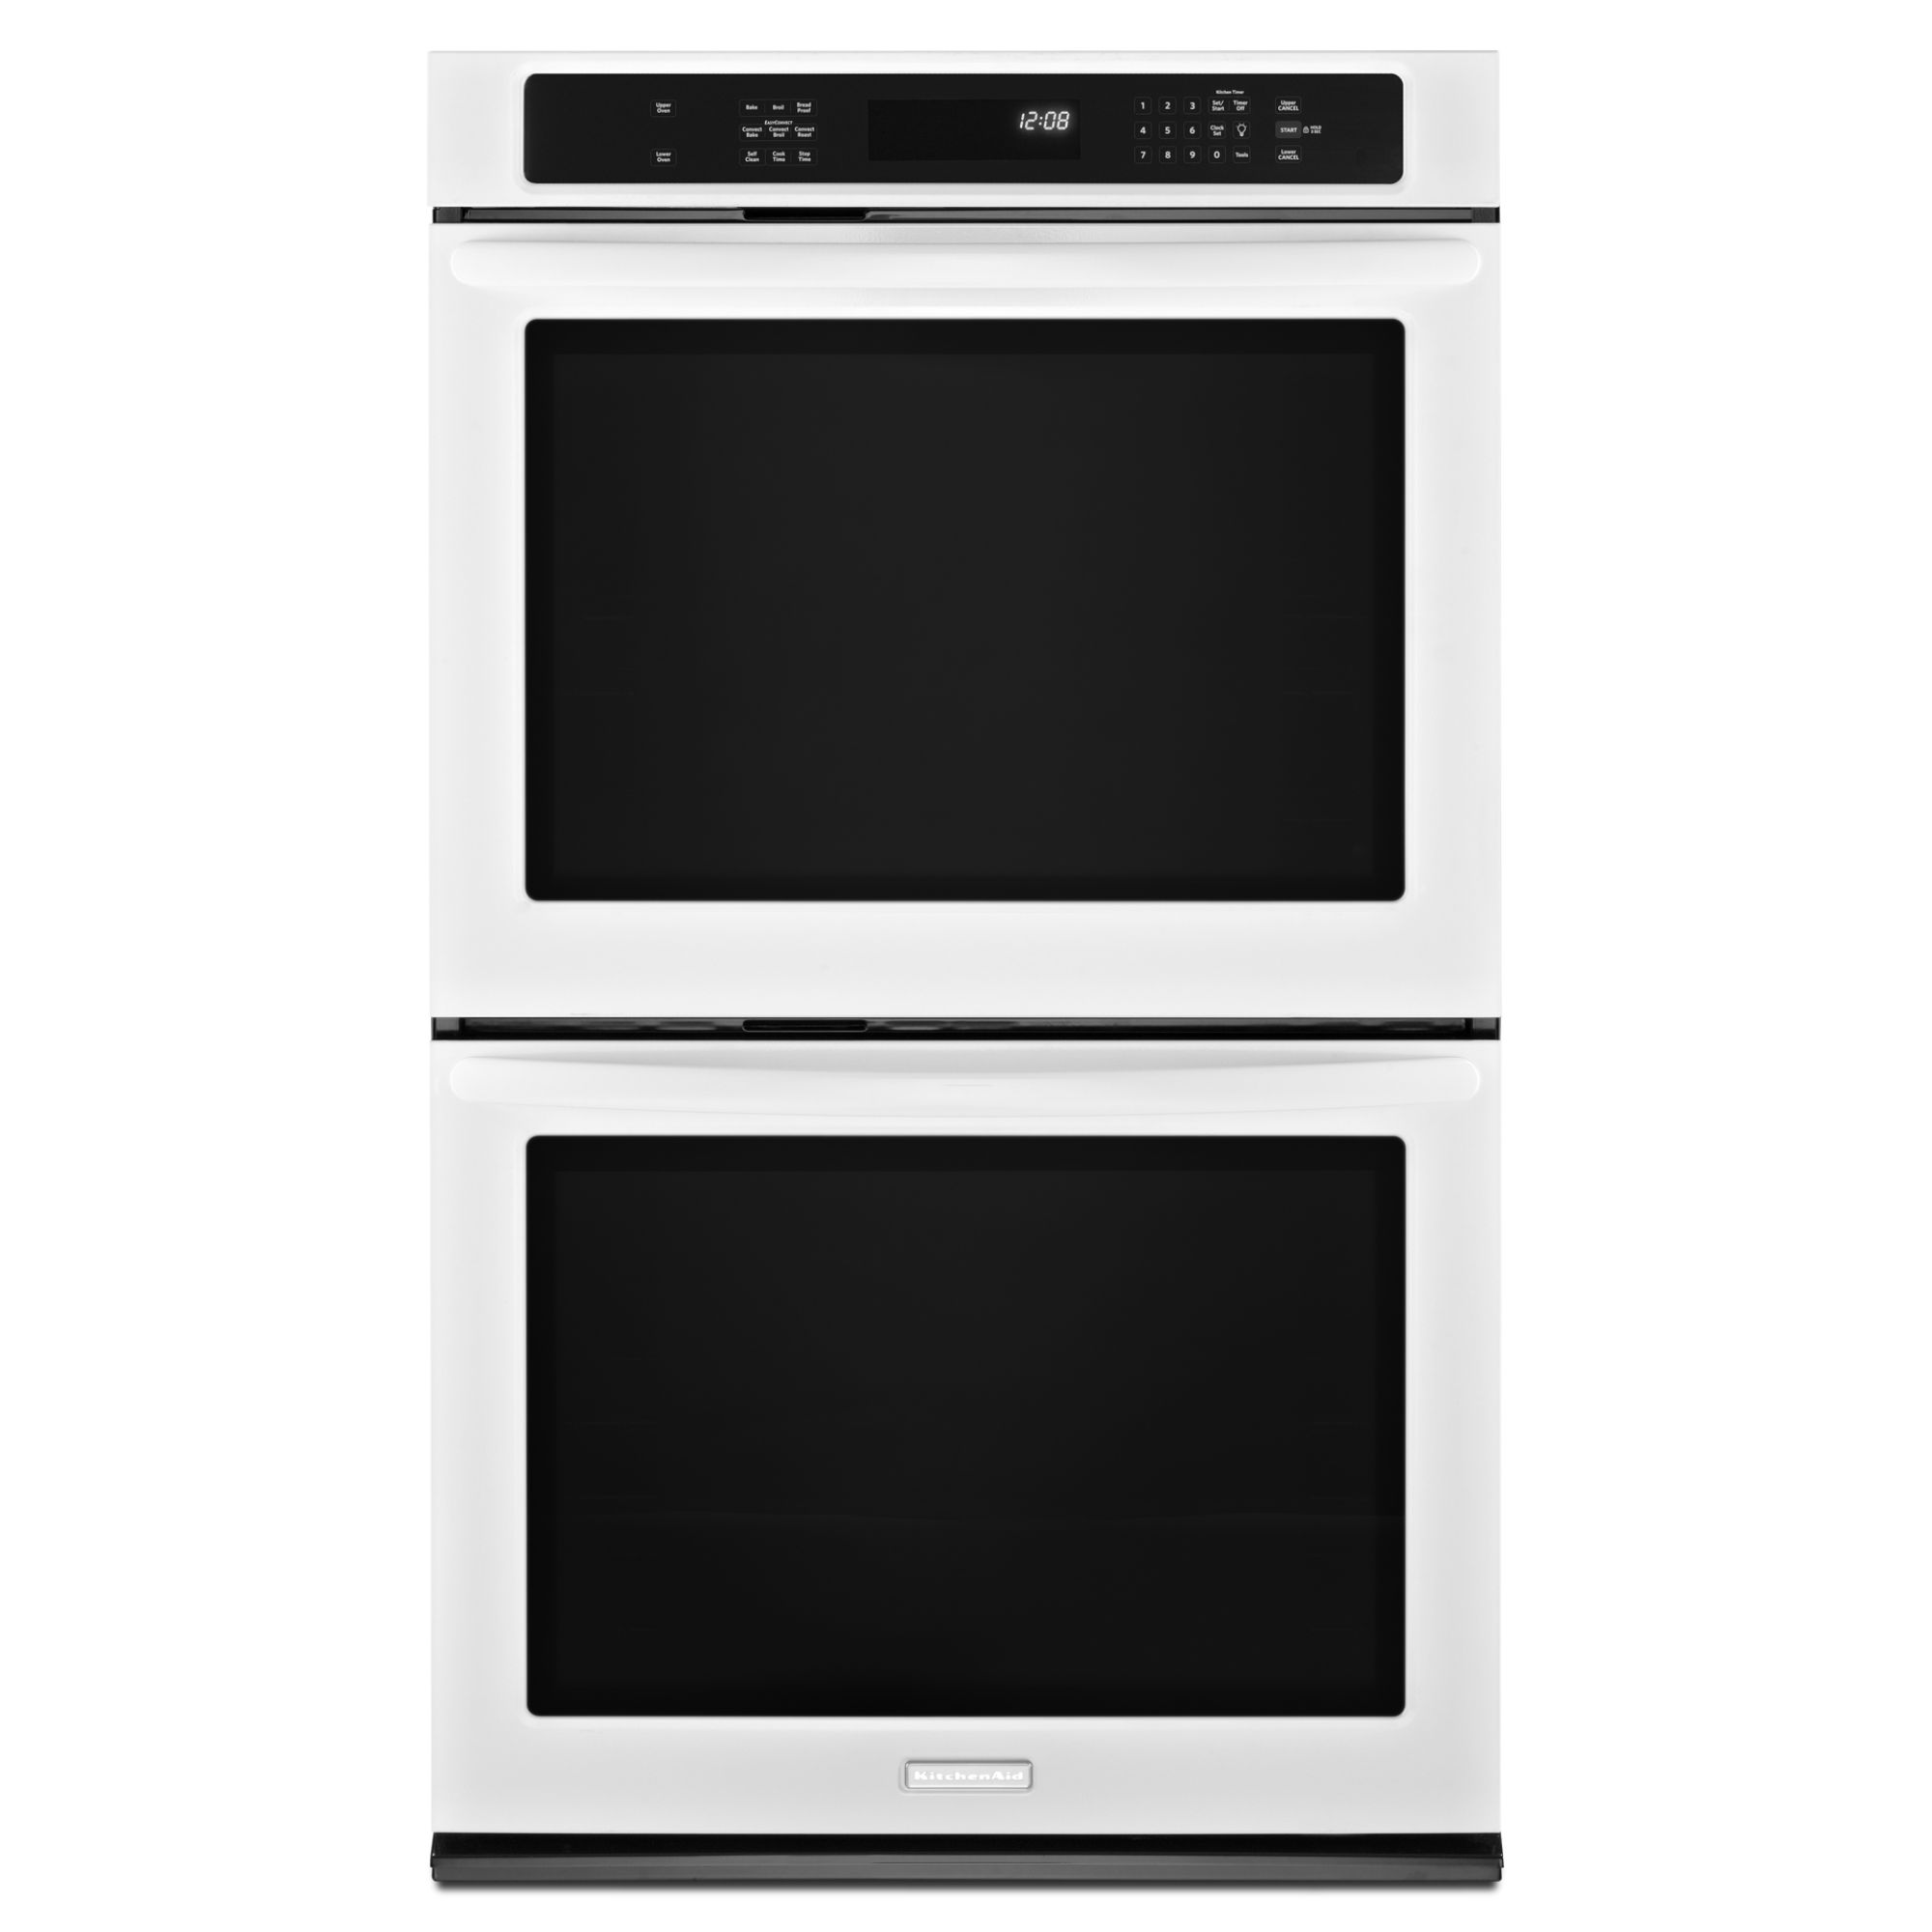 KitchenAid 30 Built-in Double Oven with Even-Heat™ Technology - White